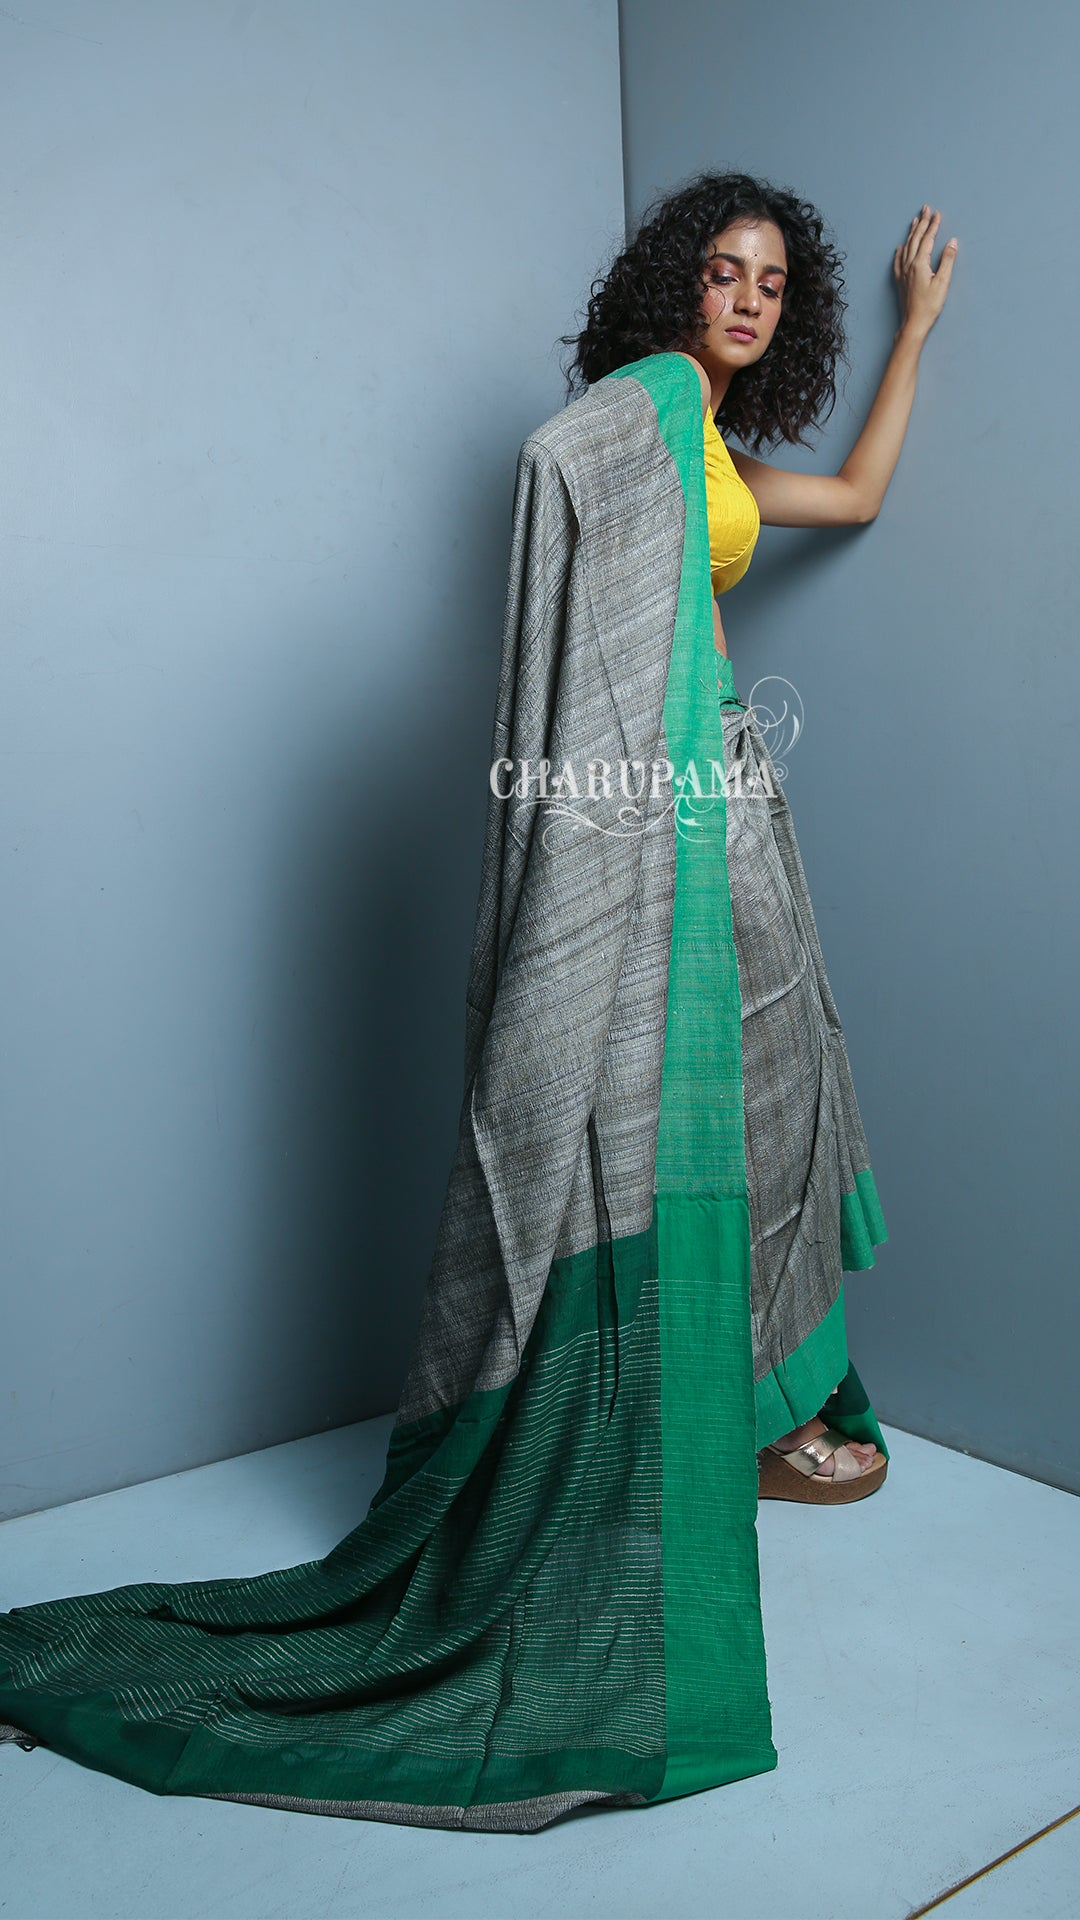 Charupama - Steel Grey And Green Border Design. Cotton Ghicha Saree Is Traditional And Yet Rather Contemporary. Very Light Weight Pallu Is Styled By Thin Strips Of The Thread And Zari.